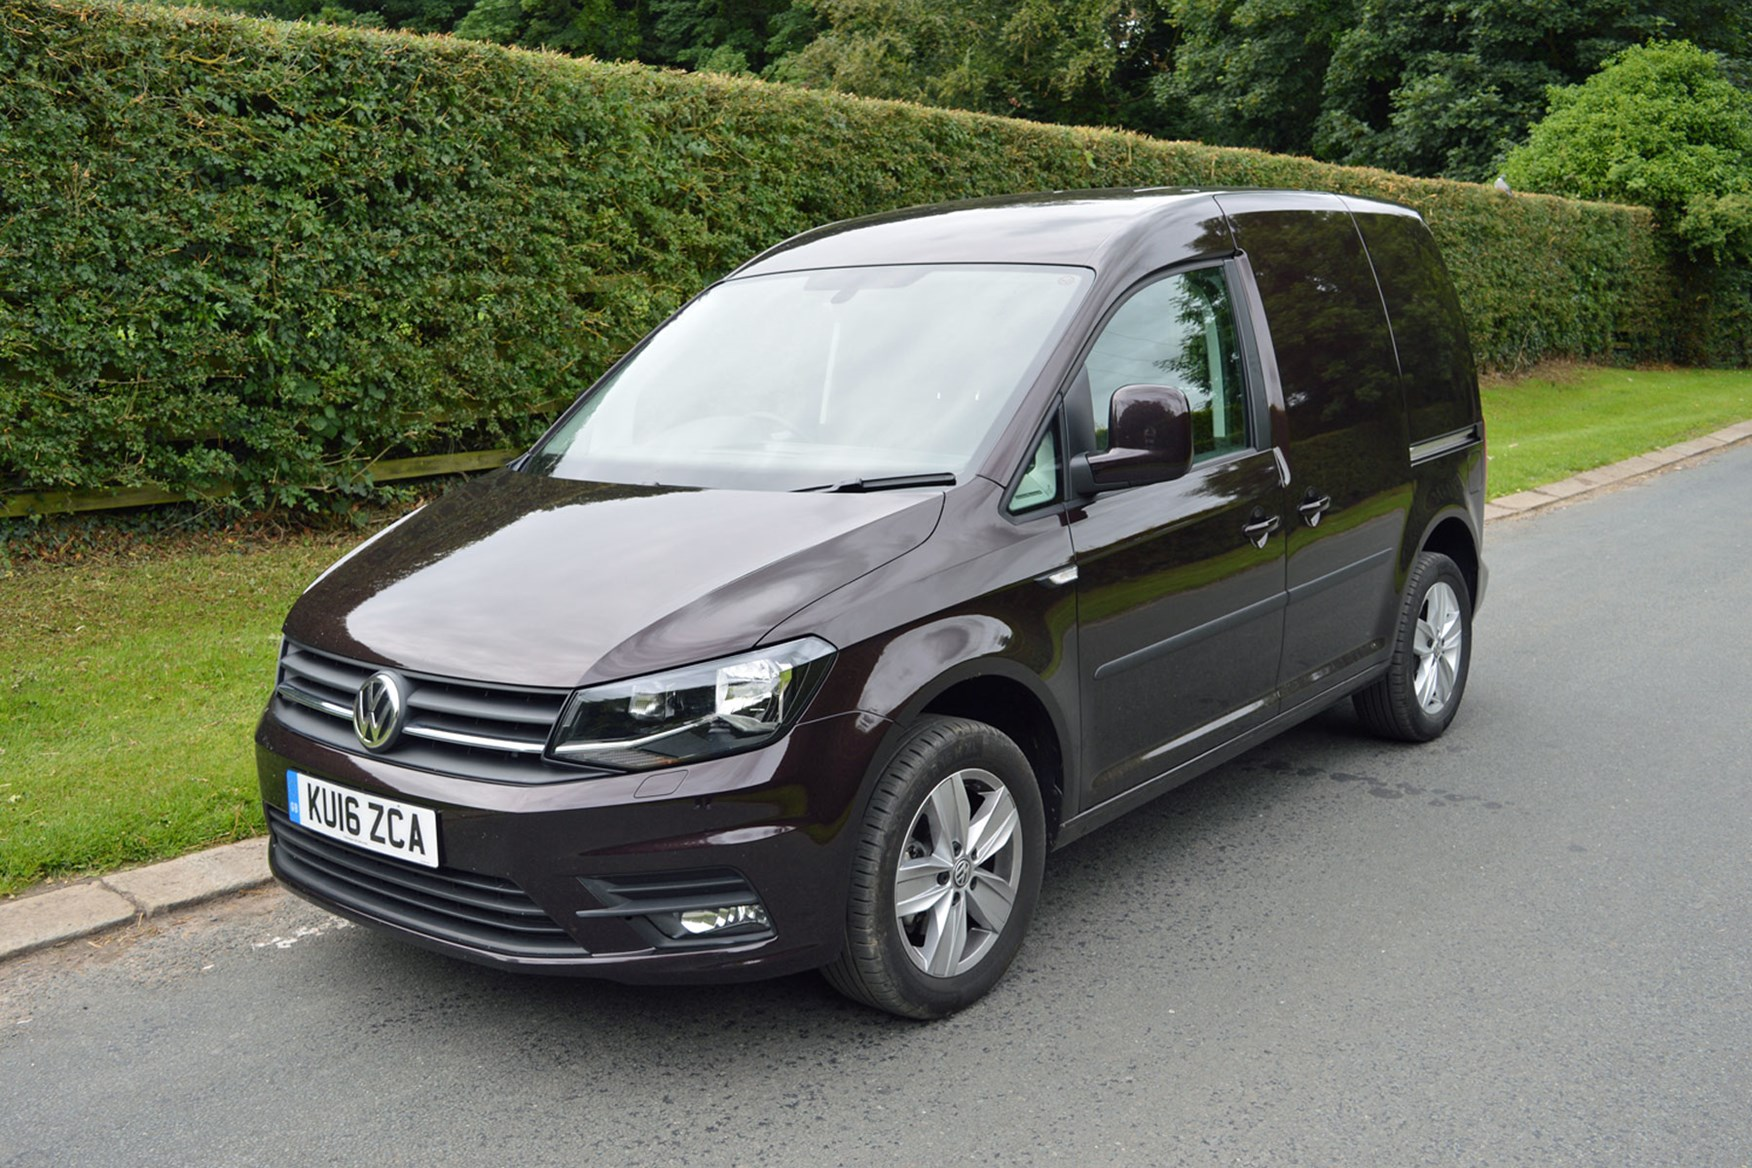 VW Caddy 1.4-litre TSI 125 review - front view, purple, 2016